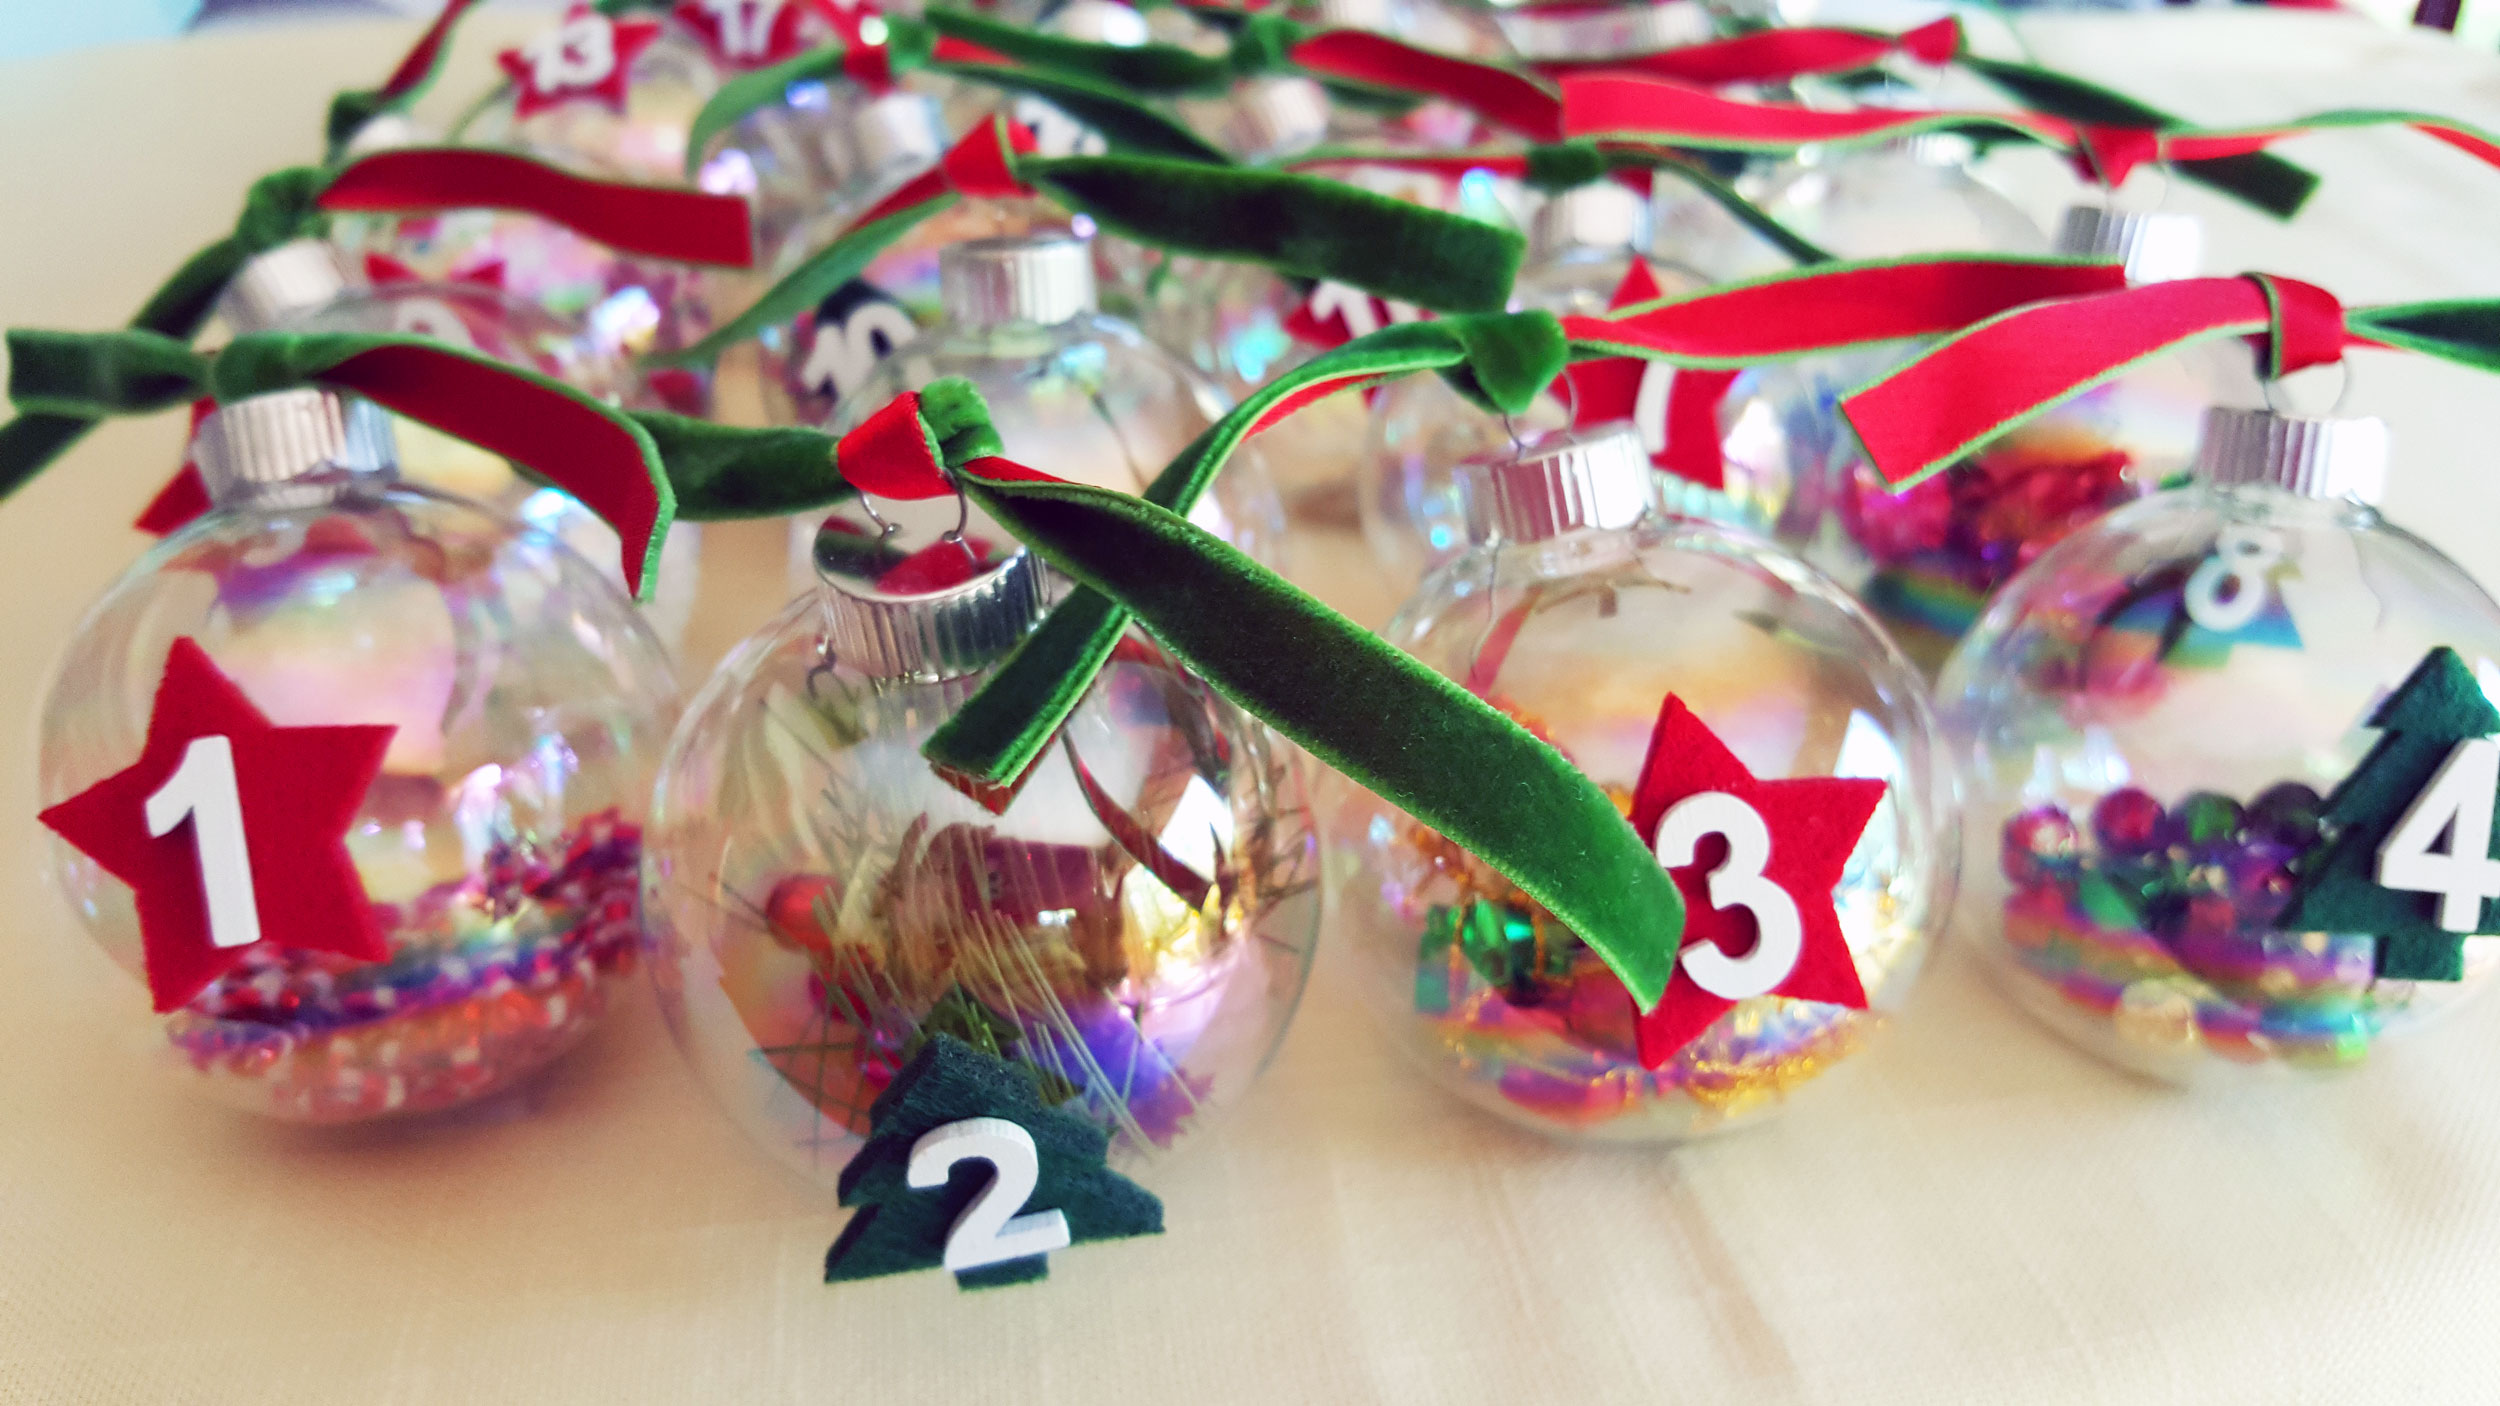 Advent Ornaments with fun unique objects in each one to count down until Christmas. | OrnamentShop.com